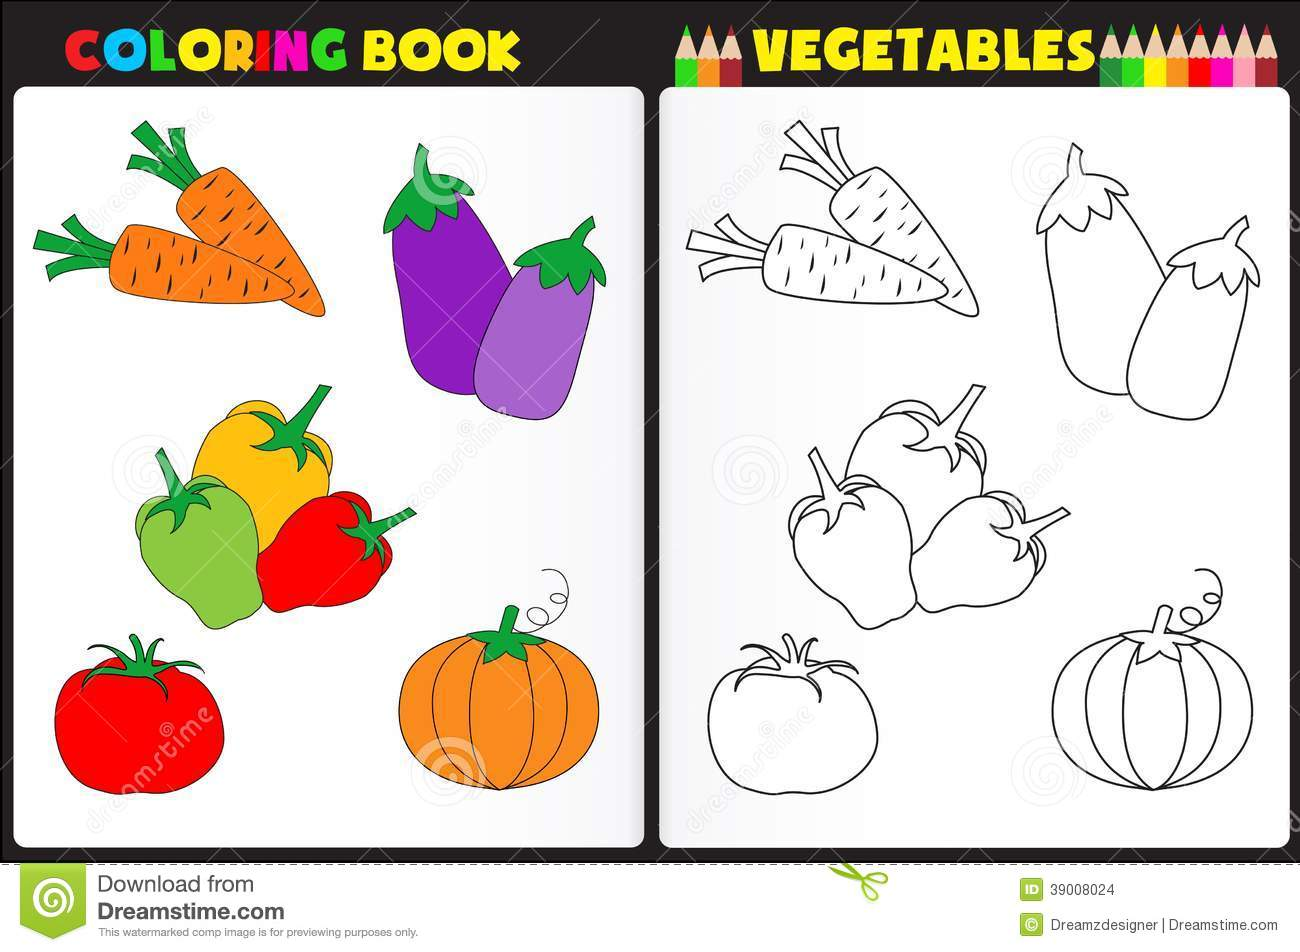 Nature Coloring Book Page For Kids With Colorful Vegetables And